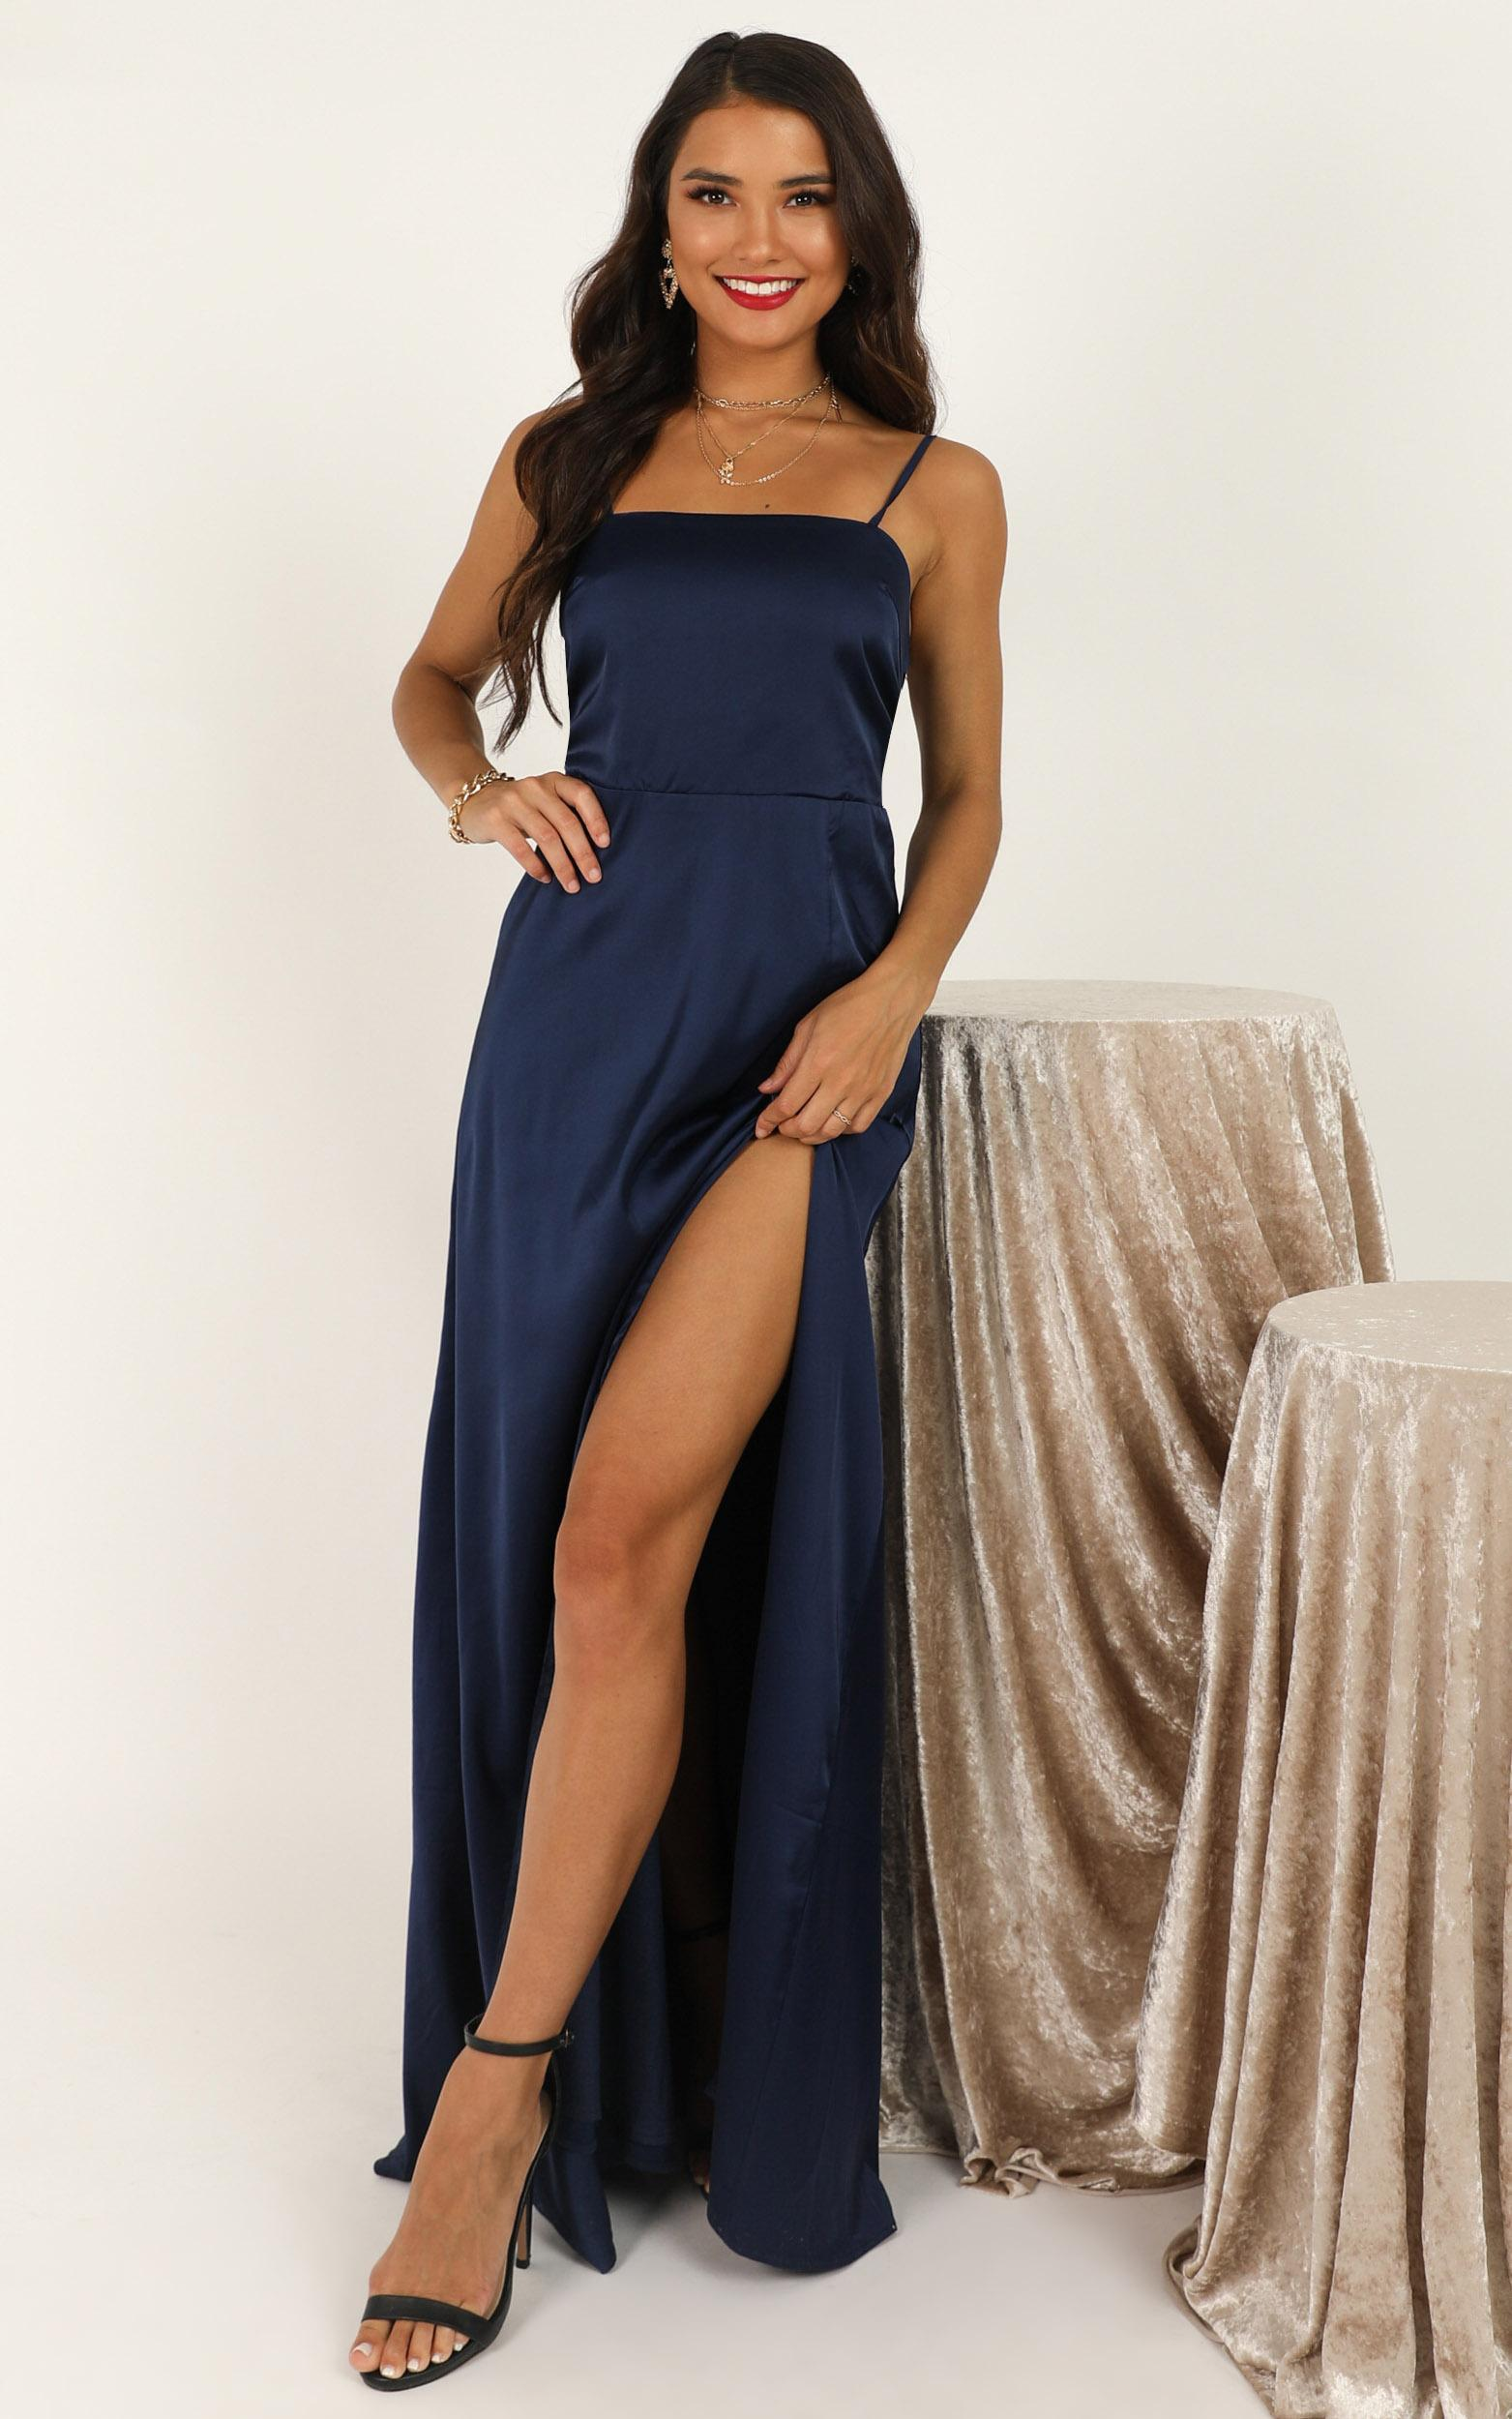 You Got That Vibe Dress in navy satin - 20 (XXXXL), Navy, hi-res image number null